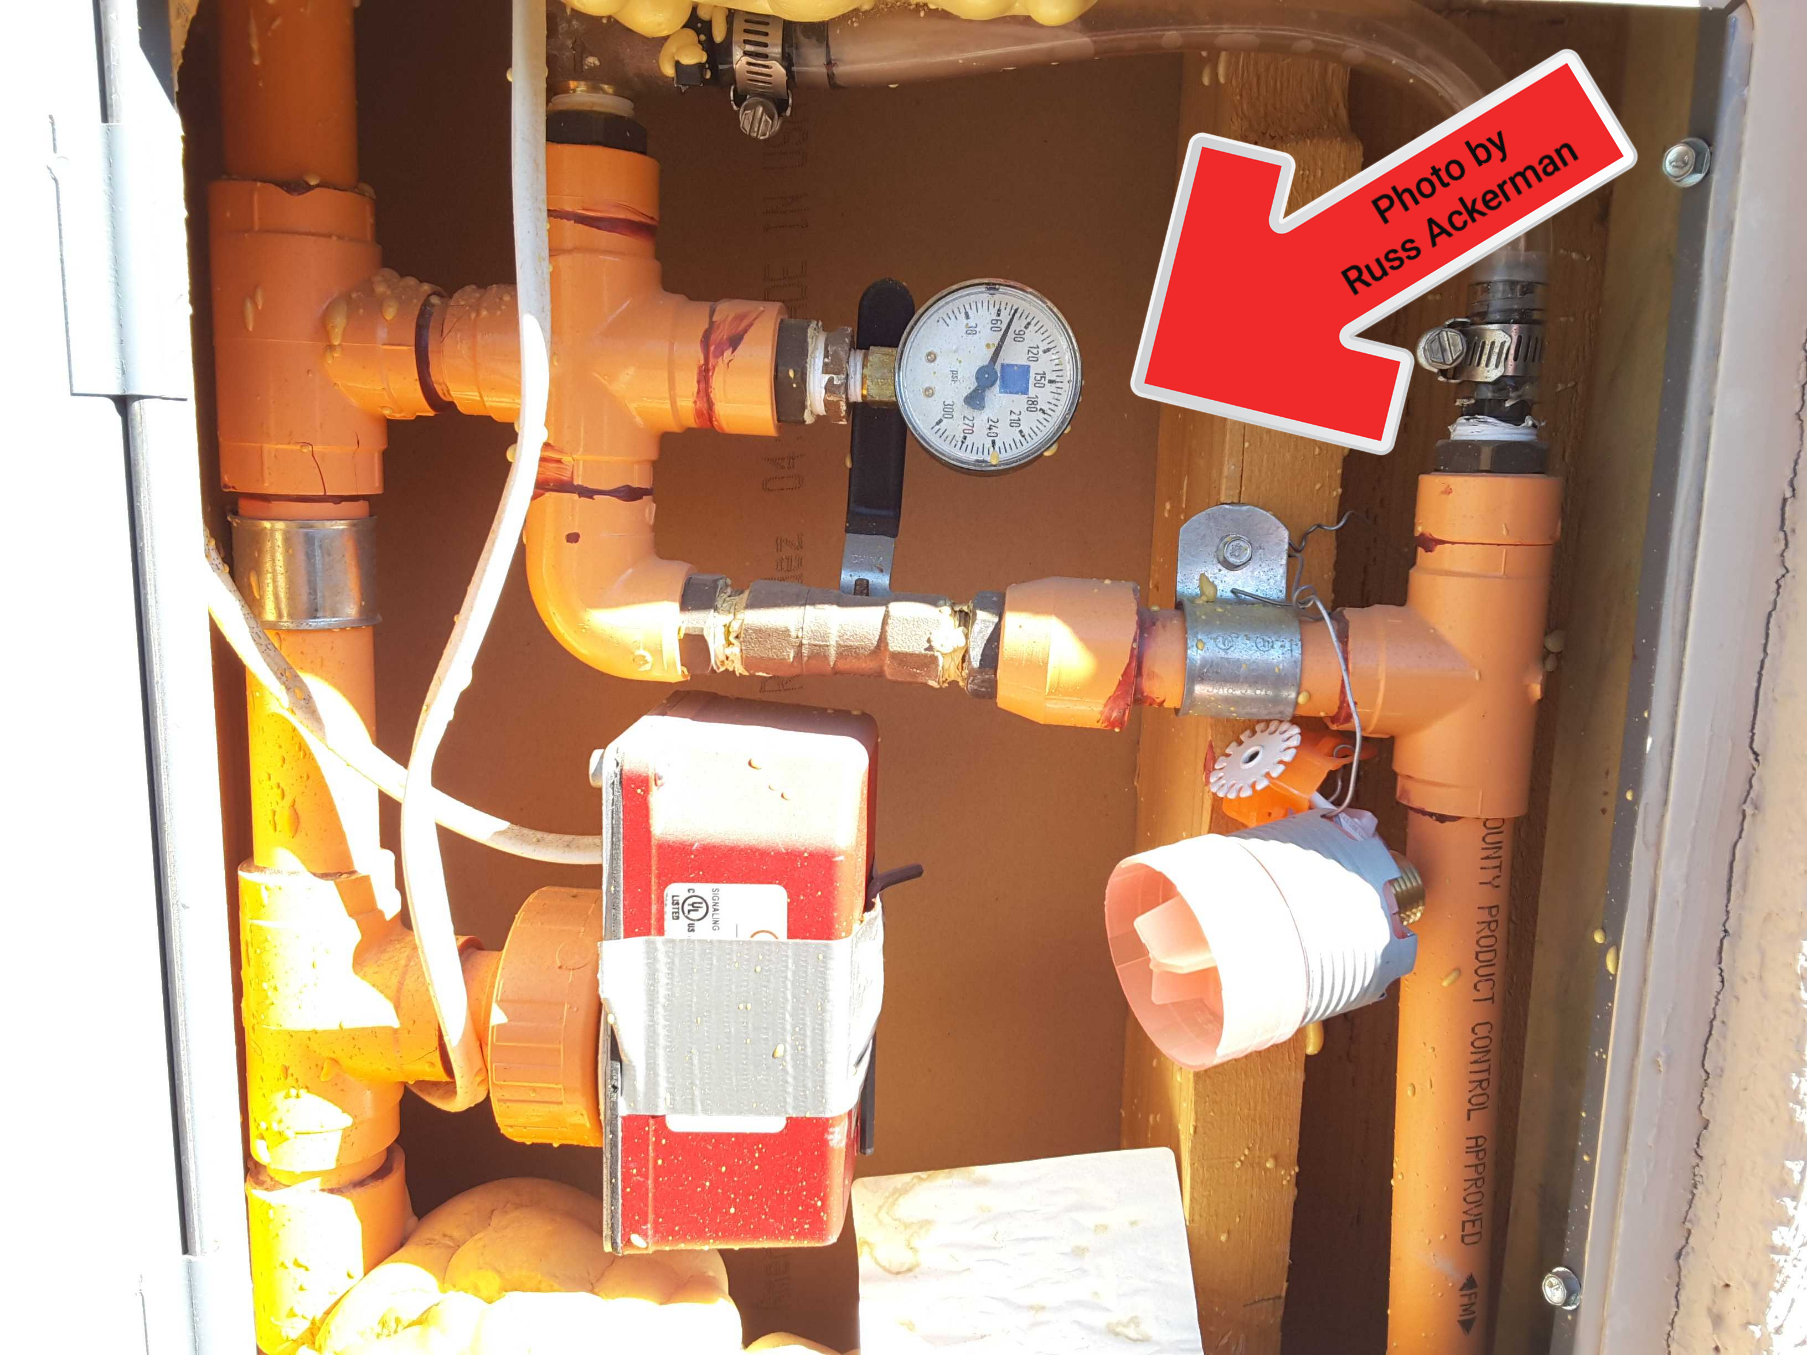 Apart from checking for leaks, fire sprinkler systems are beyond the scope of a typical home inspection. Any orange piping you see is related to this system.